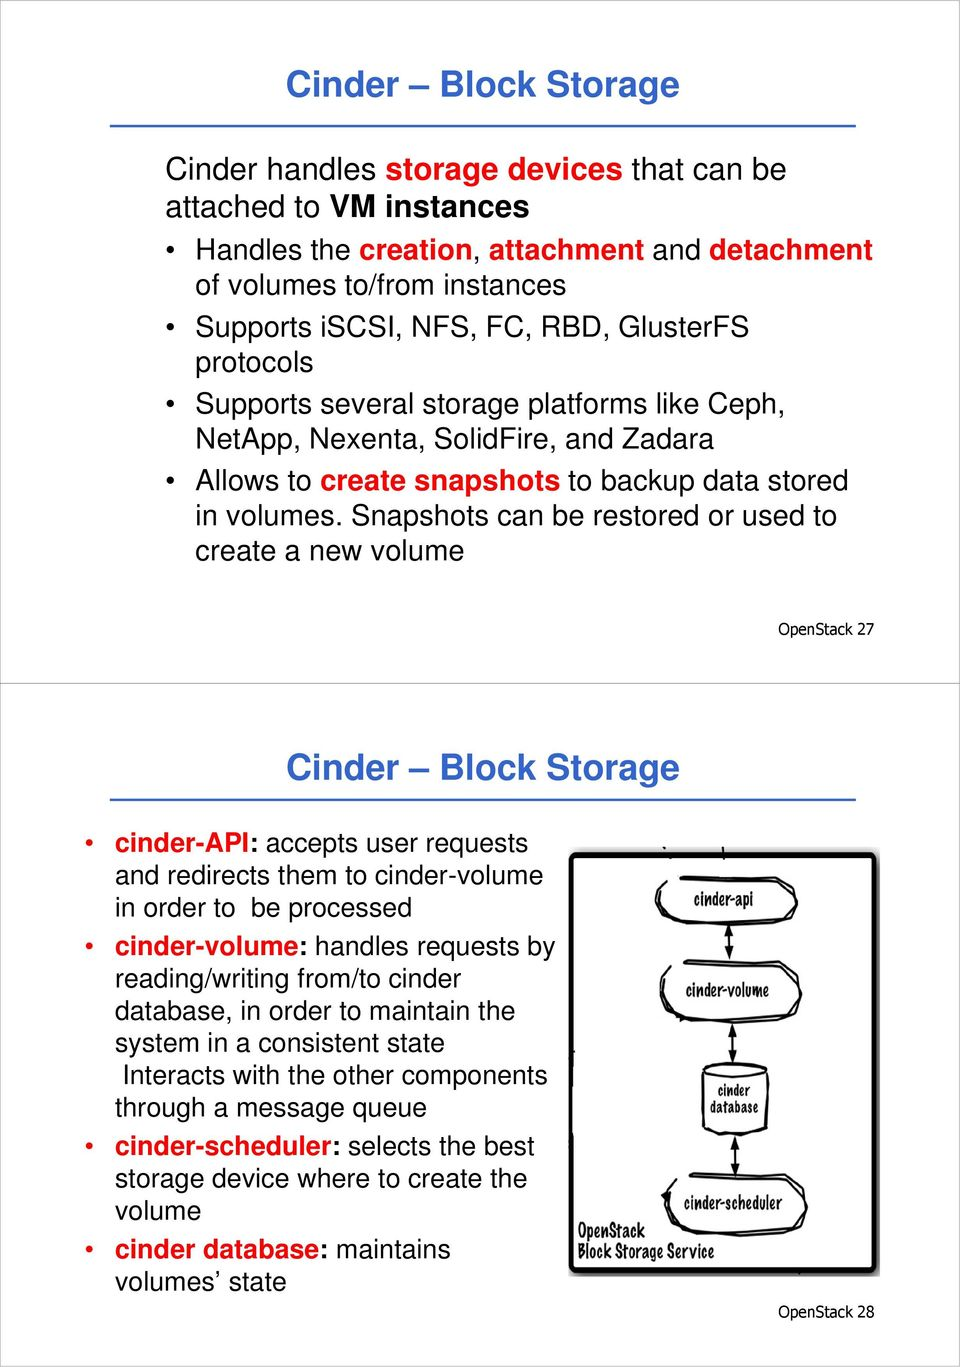 Snapshots can be restored or used to create a new volume OpenStack 27 Cinder Block Storage cinder-api: accepts user requests and redirects them to cinder-volume in order to be processed